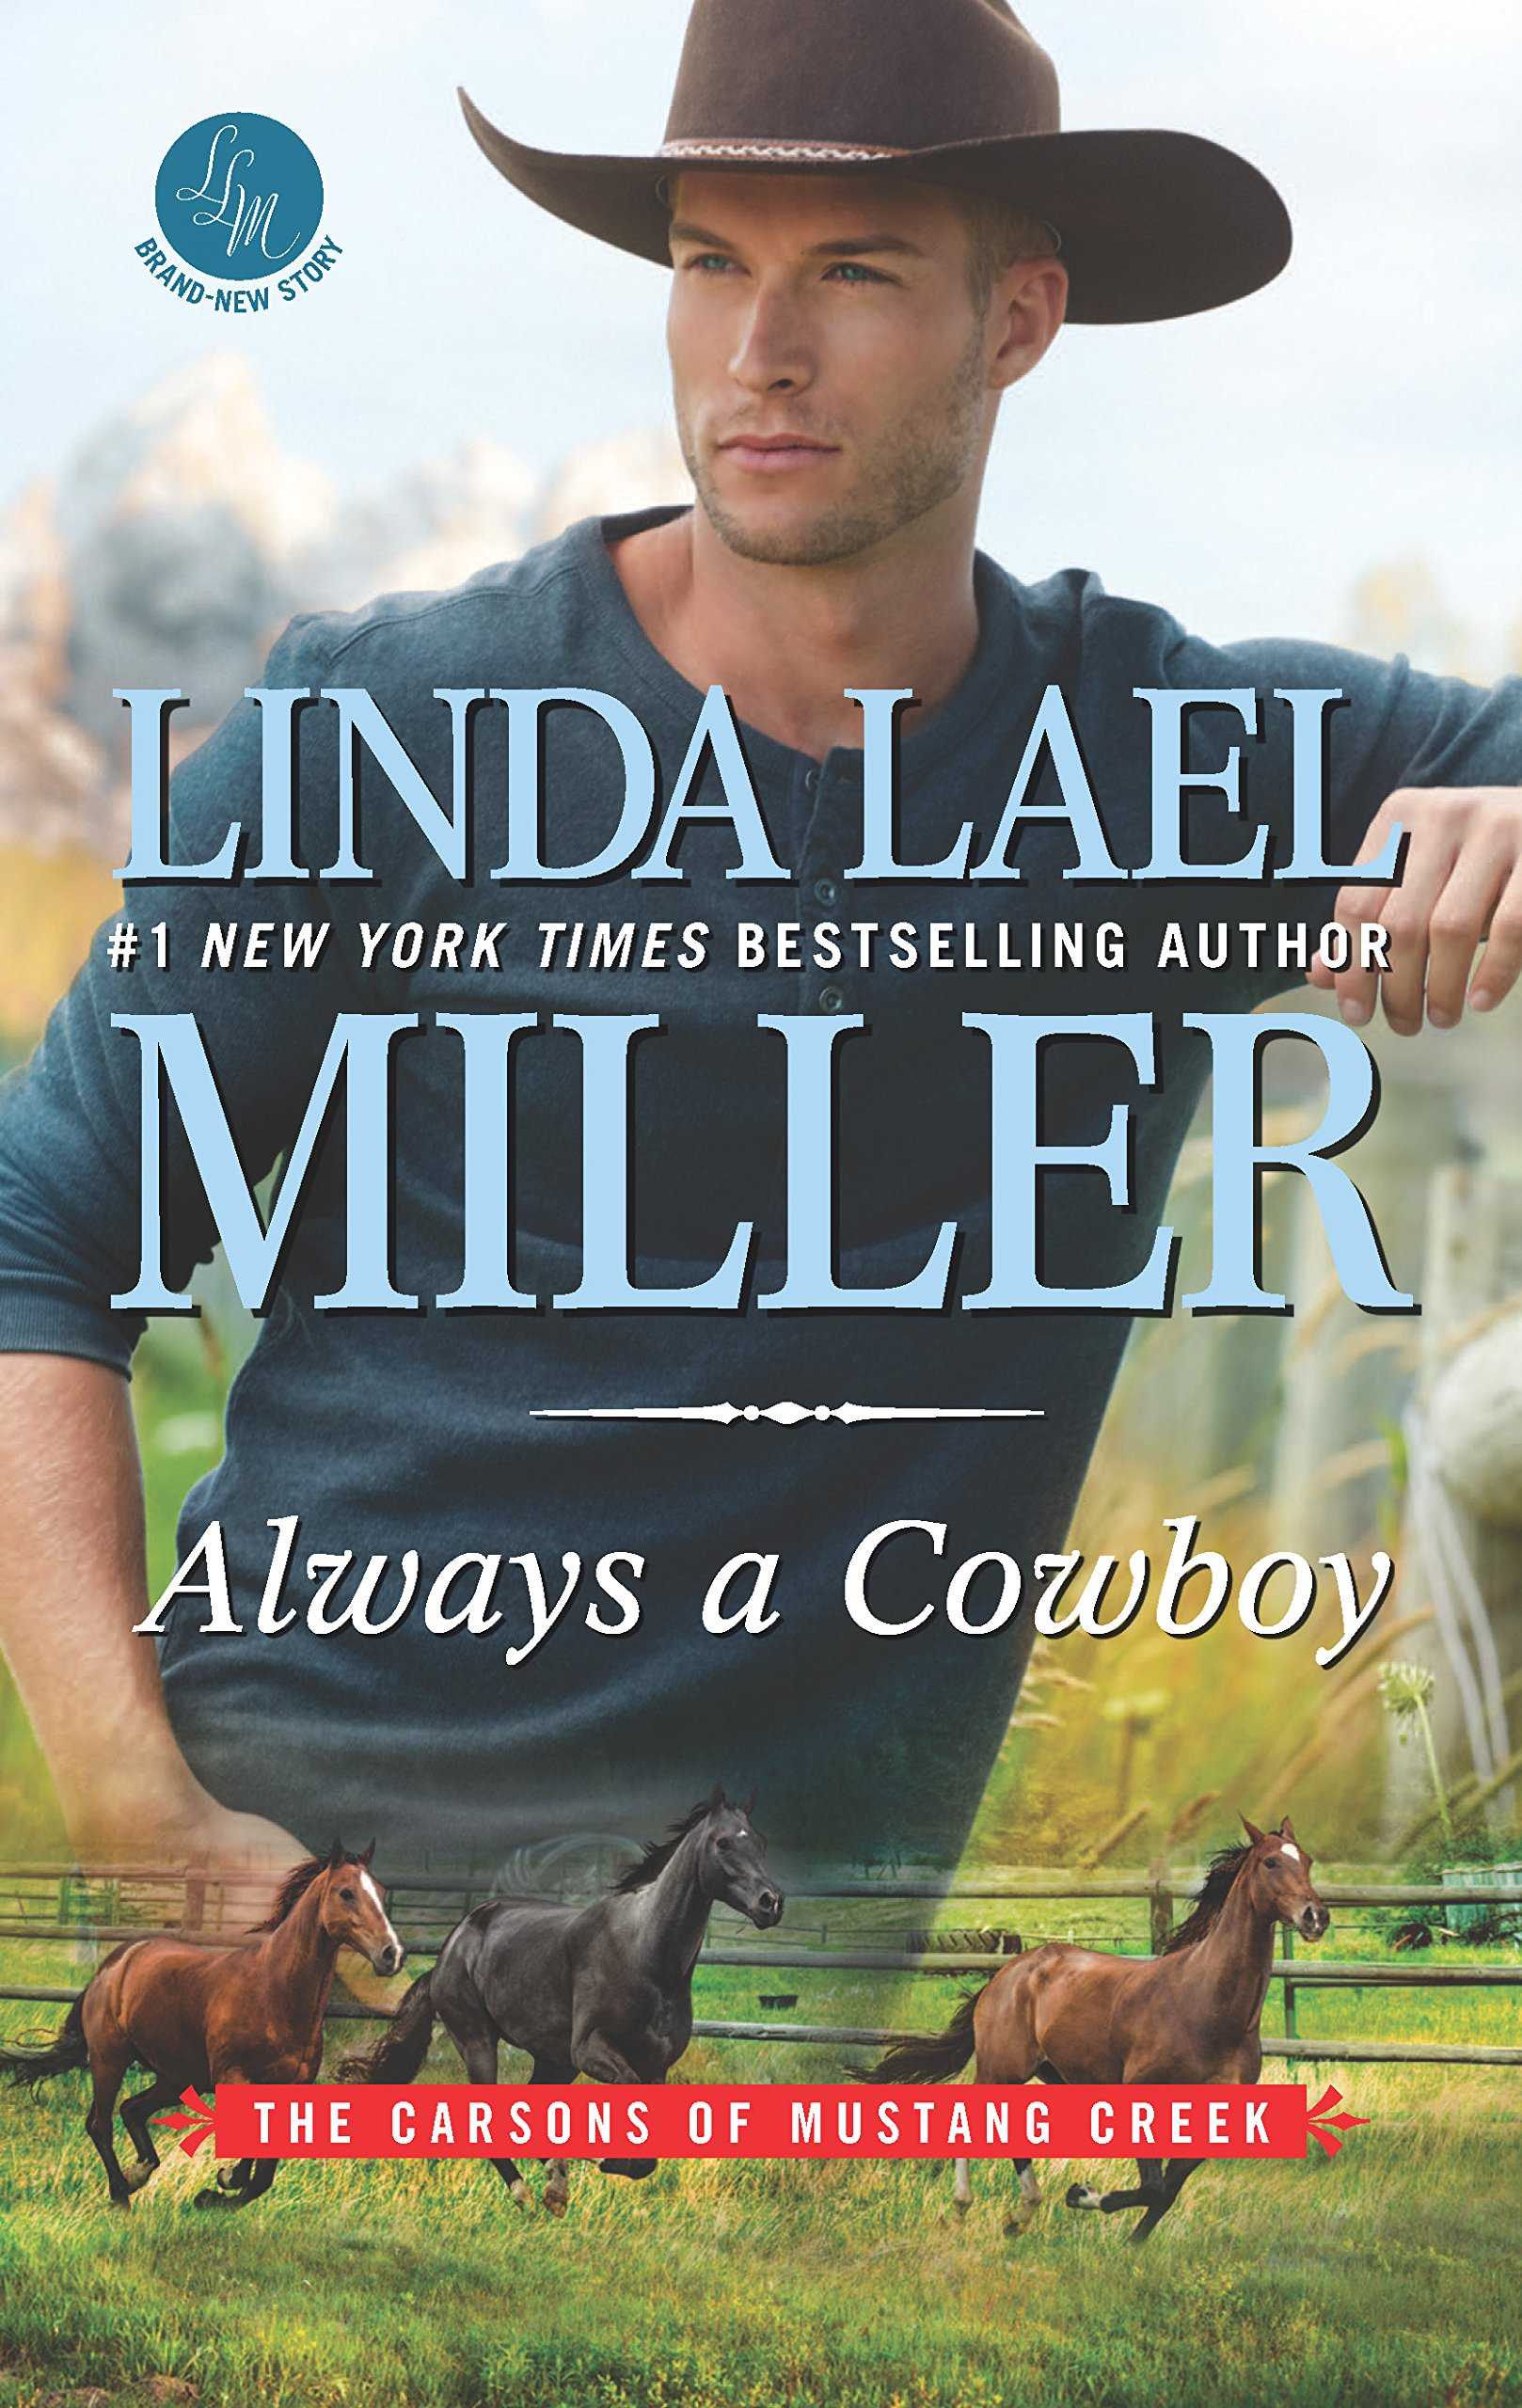 234b1d026e9 Always a Cowboy (The Carsons of Mustang Creek)  Linda Lael Miller ...